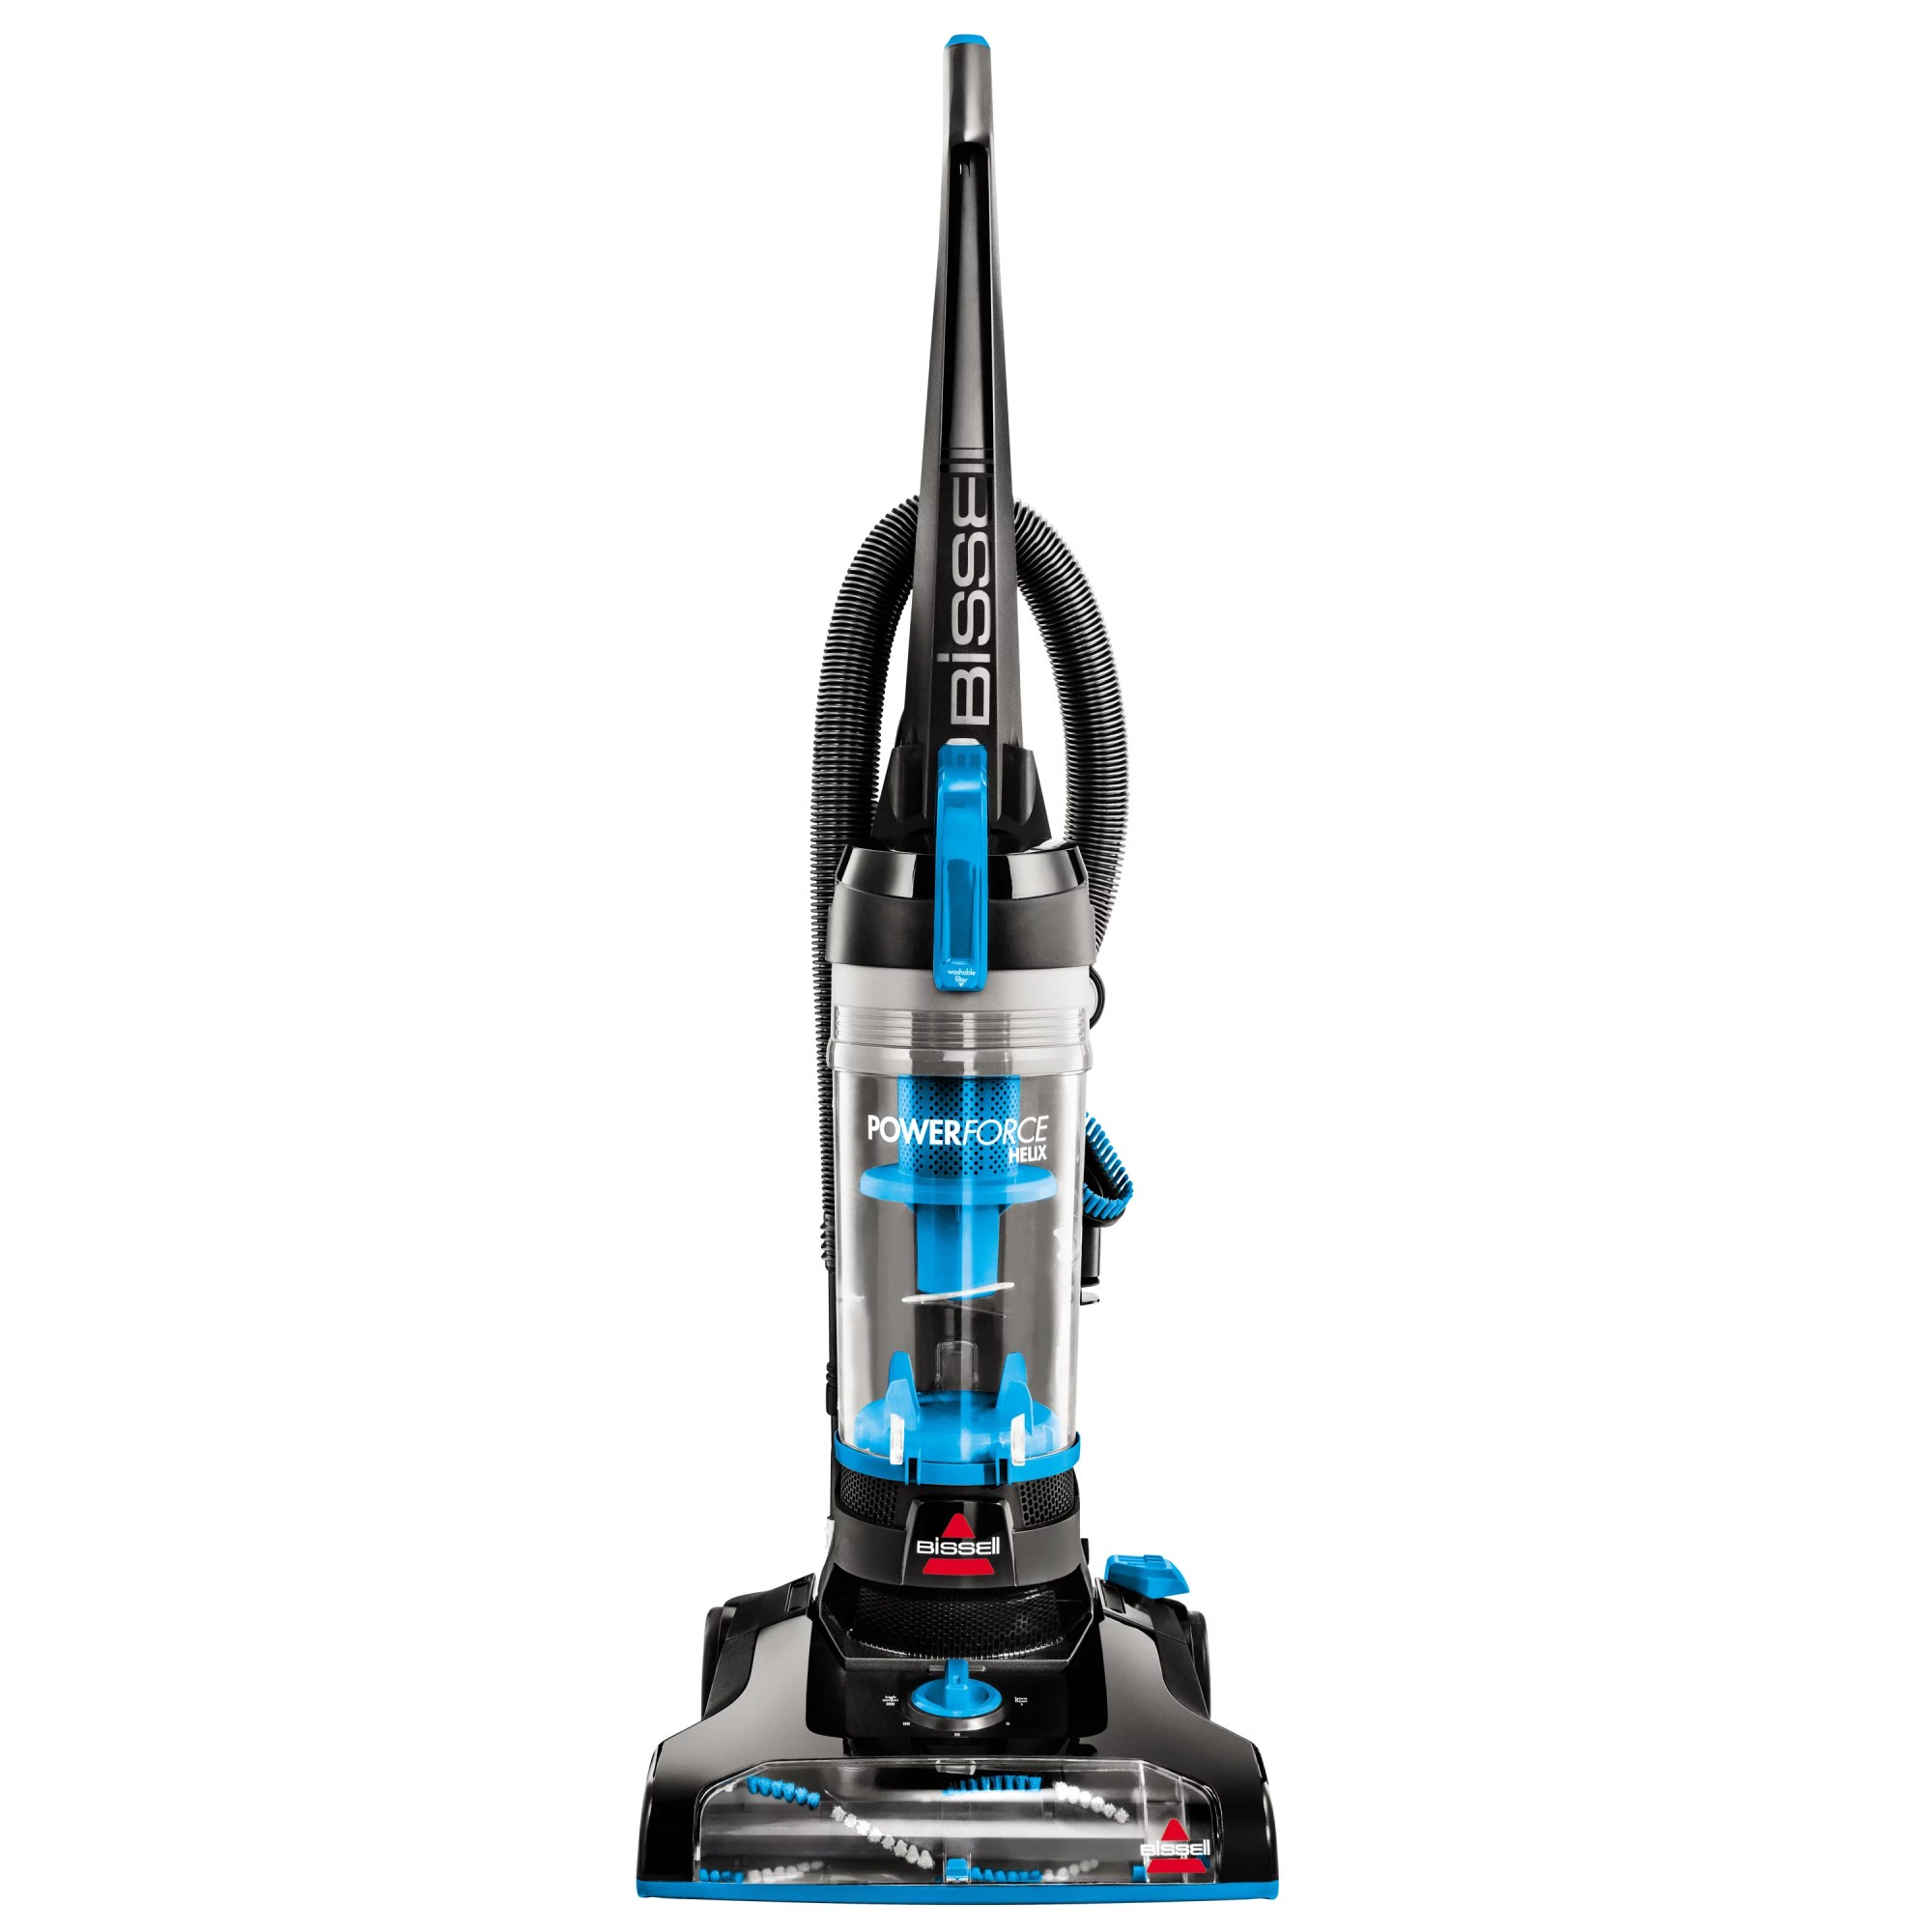 hight resolution of bissell powerforce helix bagless upright vacuum new and improved version of 1700 2191